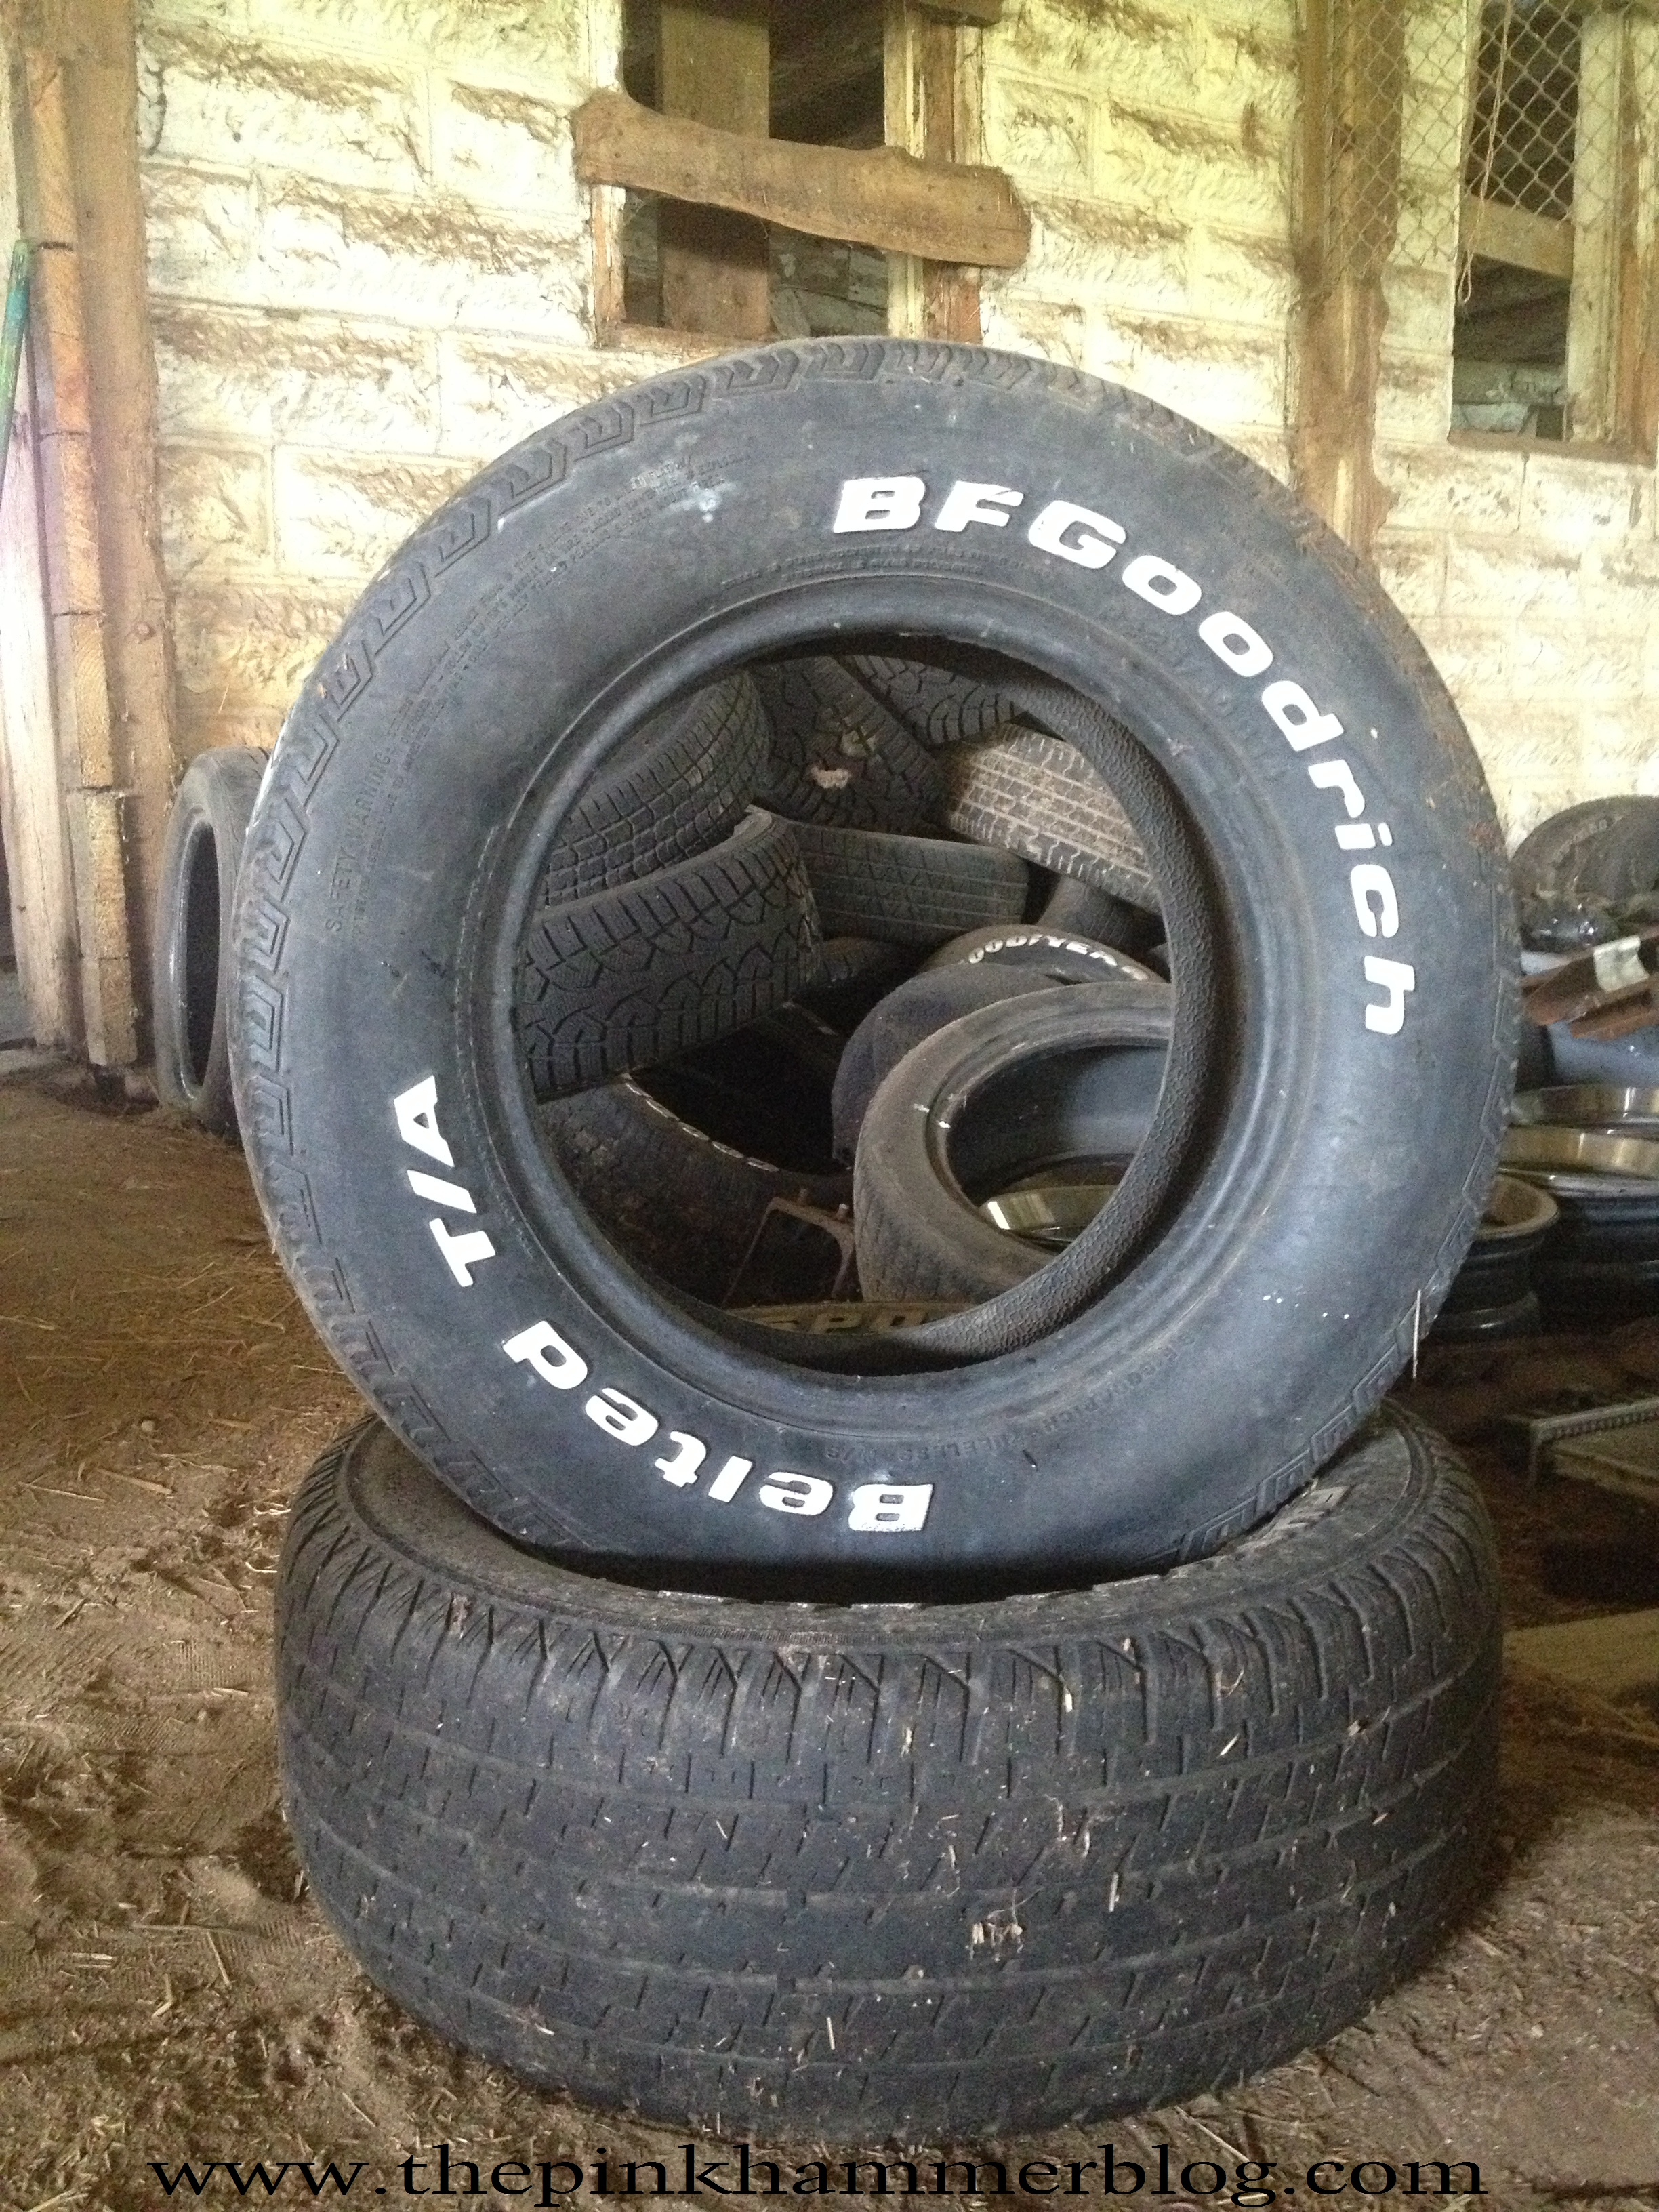 301 moved permanently - Diy projects using old tires ...